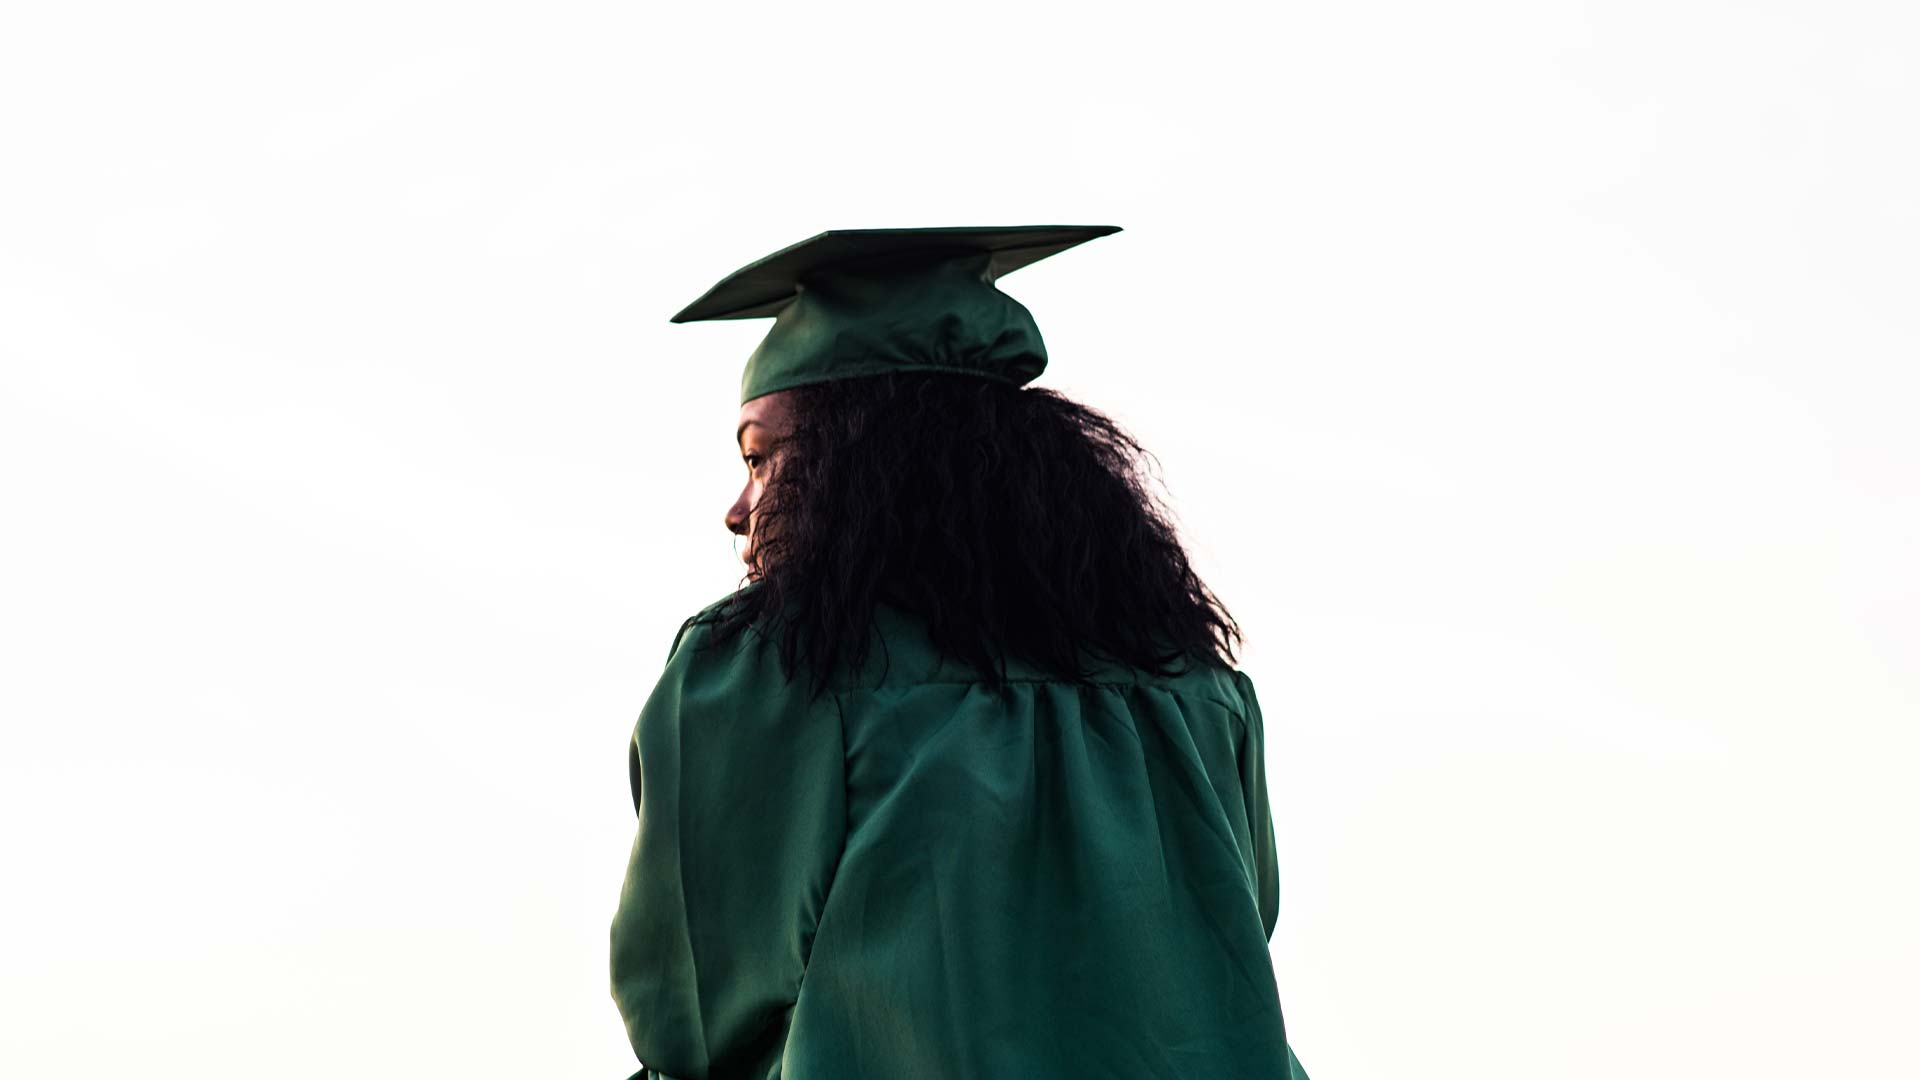 Pensive student in graduation robe